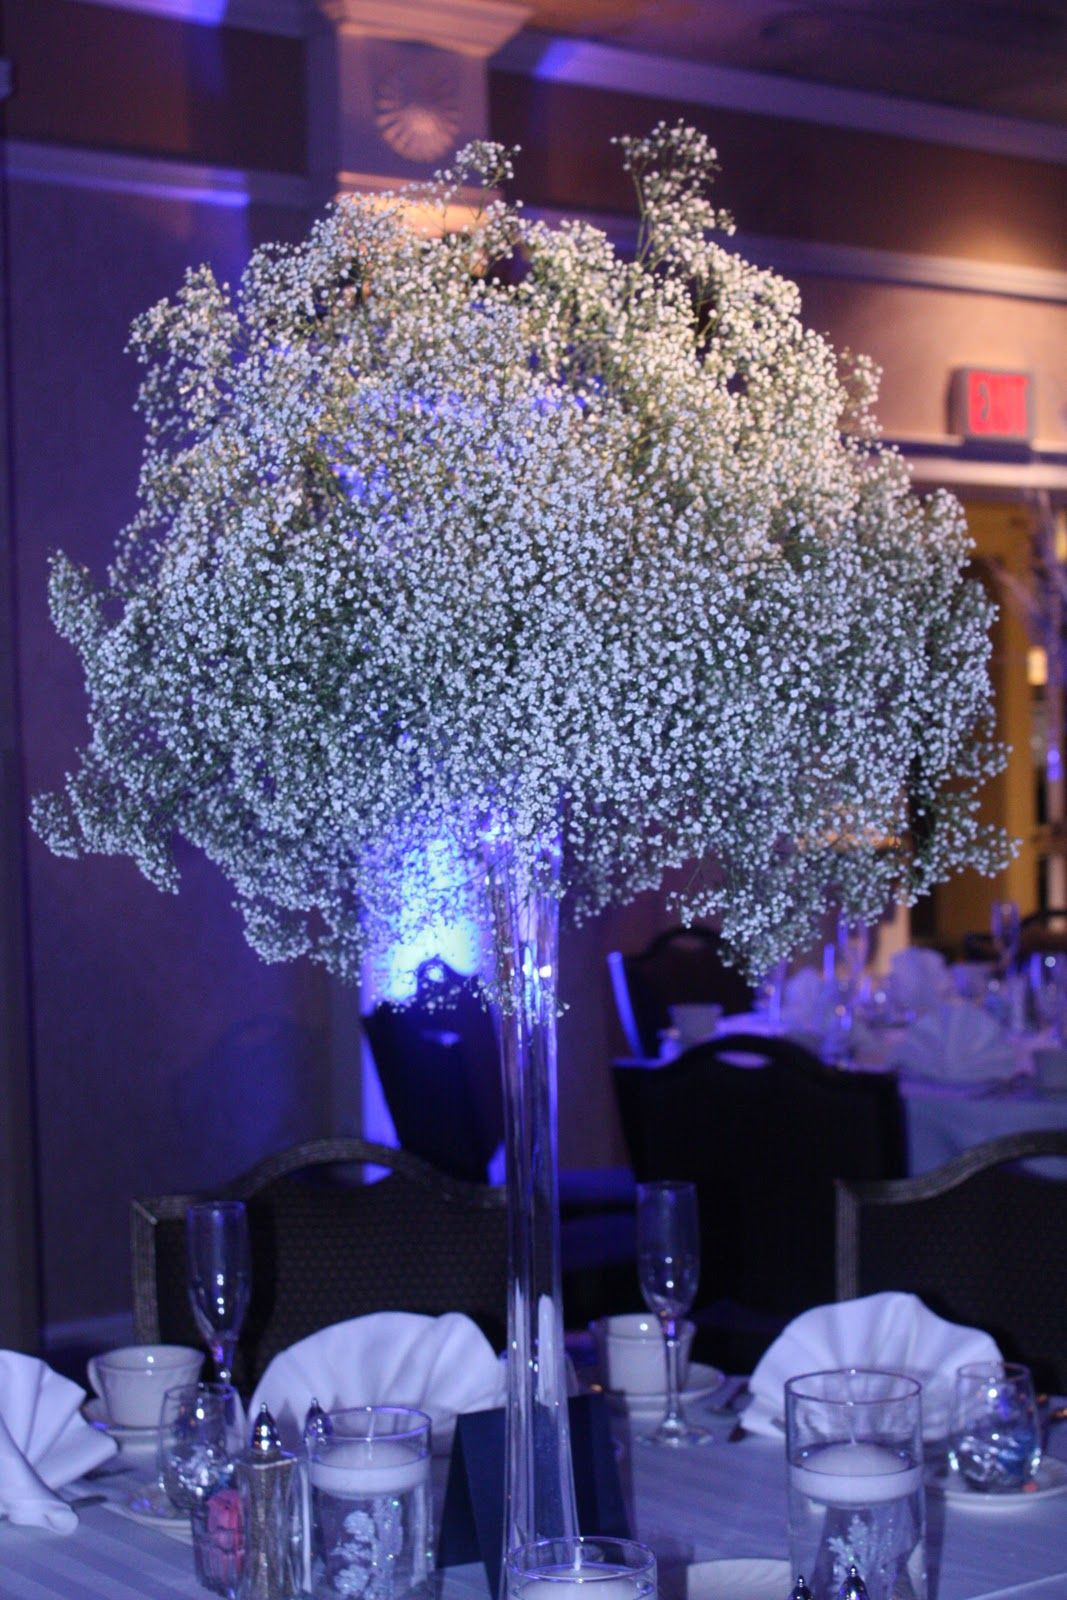 Flower vase kijiji - Eiffle Tower Vases Floral Arrangements Eiffel Tower Vases With Snowy Clouds Of Babys Breath For